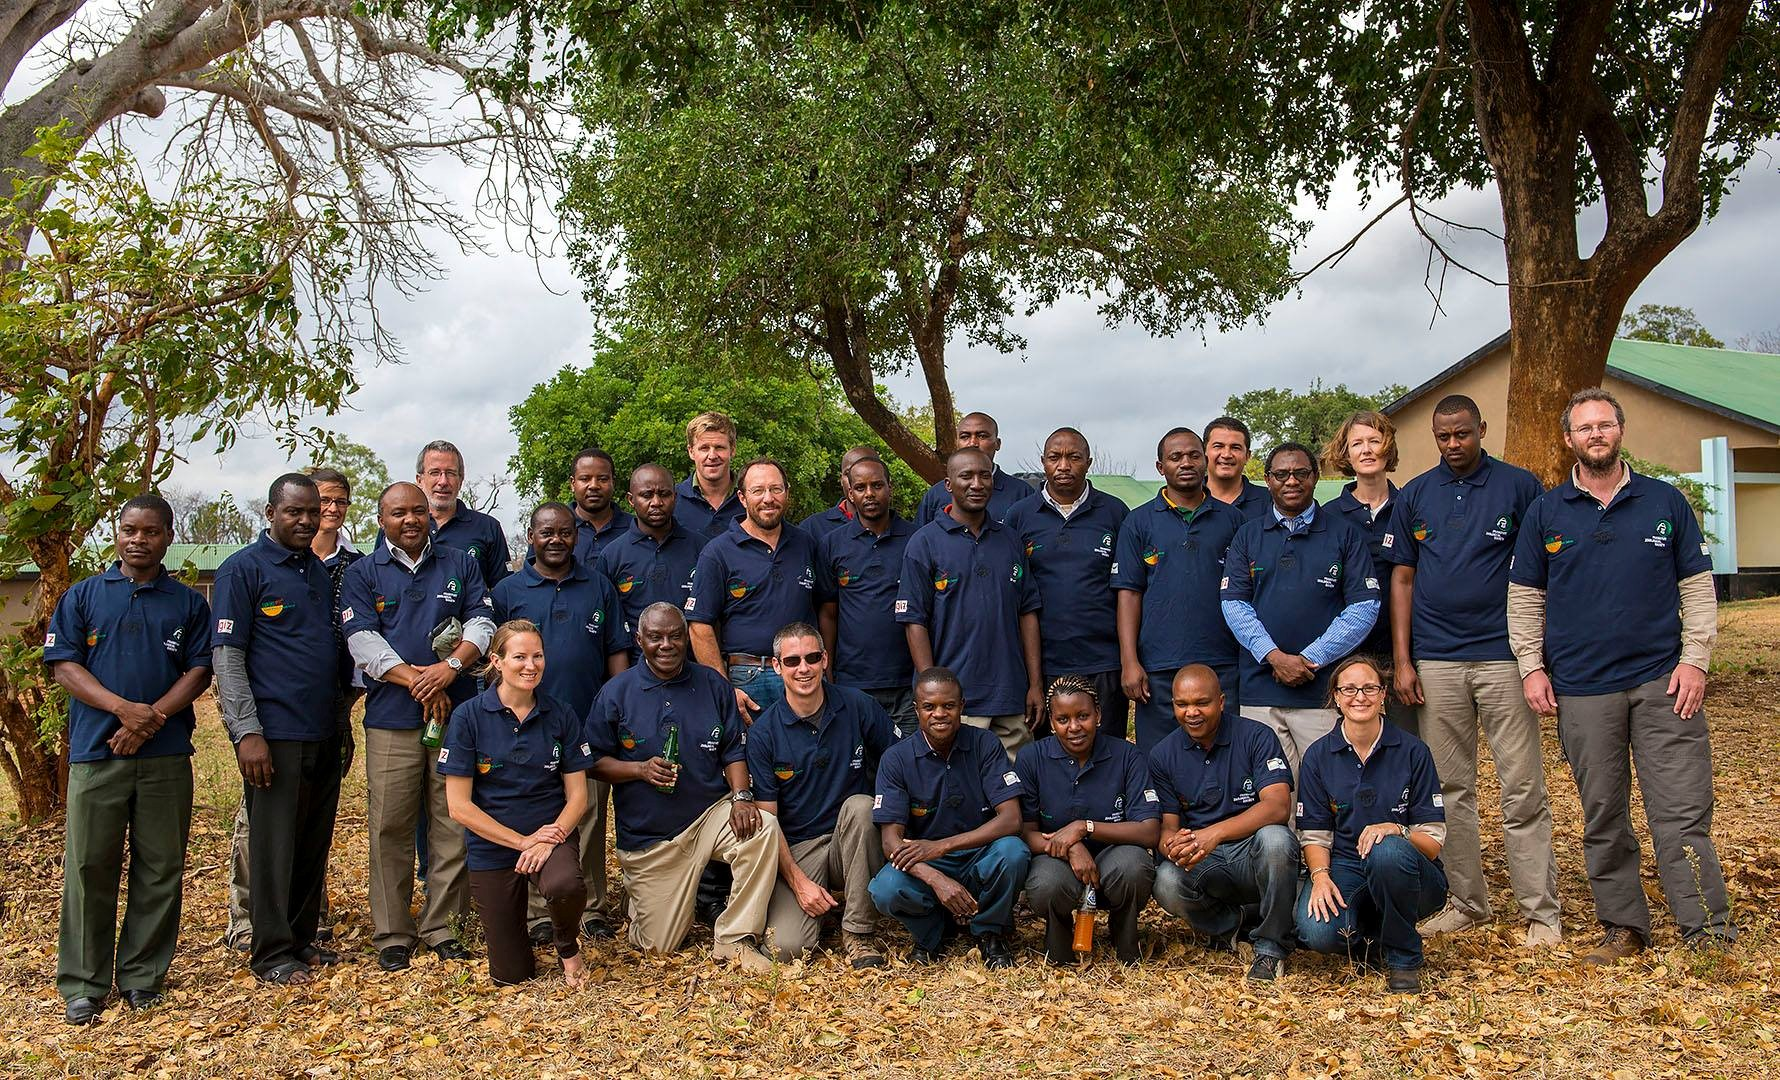 The Serengeti survey team